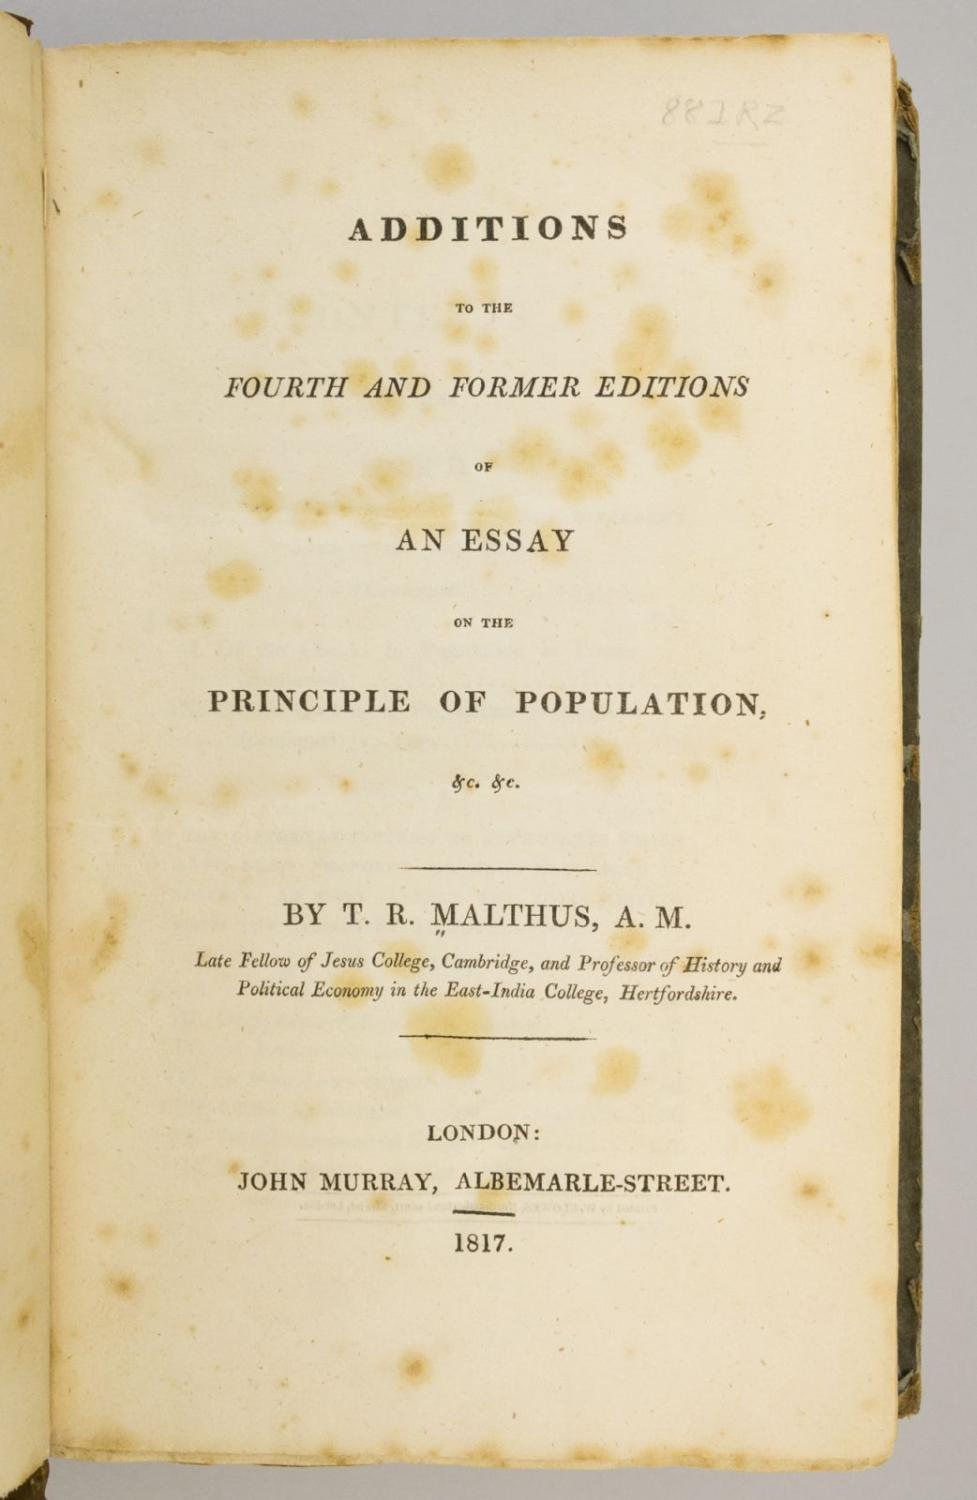 002 Essay Example On The Principle Of Population 5337830061 2 Singular Thomas Malthus Sparknotes Advocated Ap Euro Full